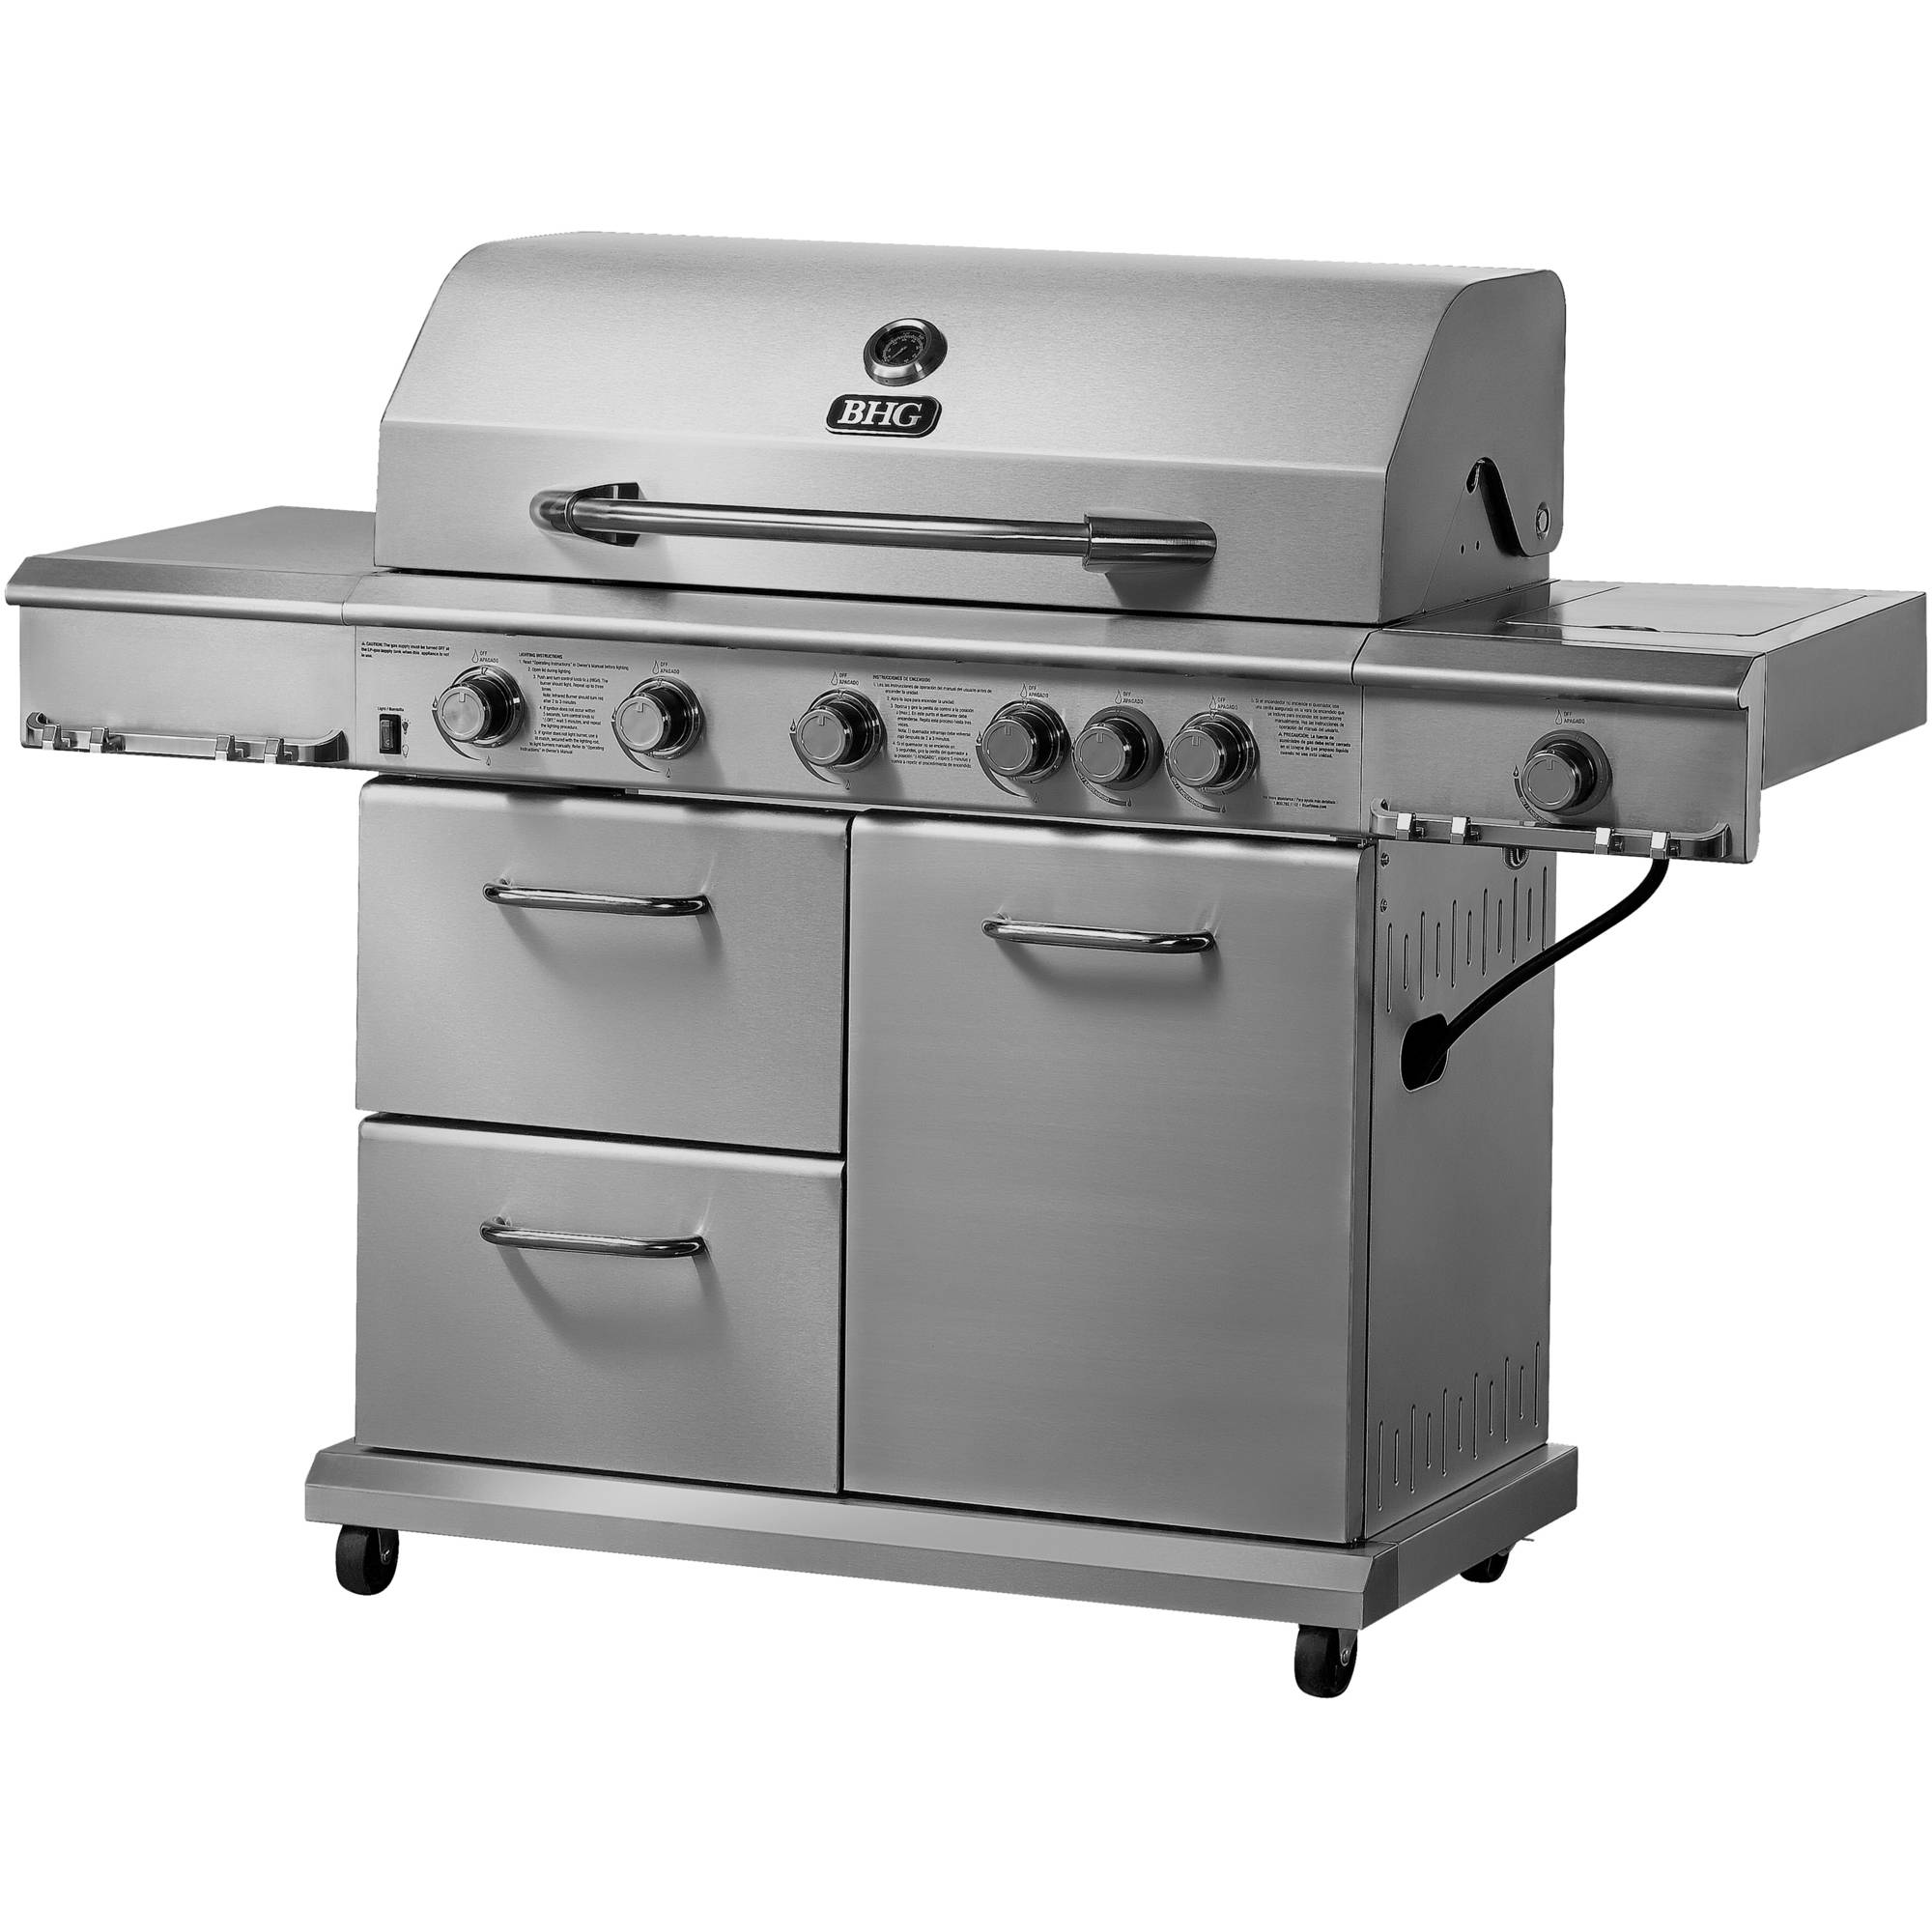 Better Homes and Gardens 6-Burner Gas Grill, Stainless Steel